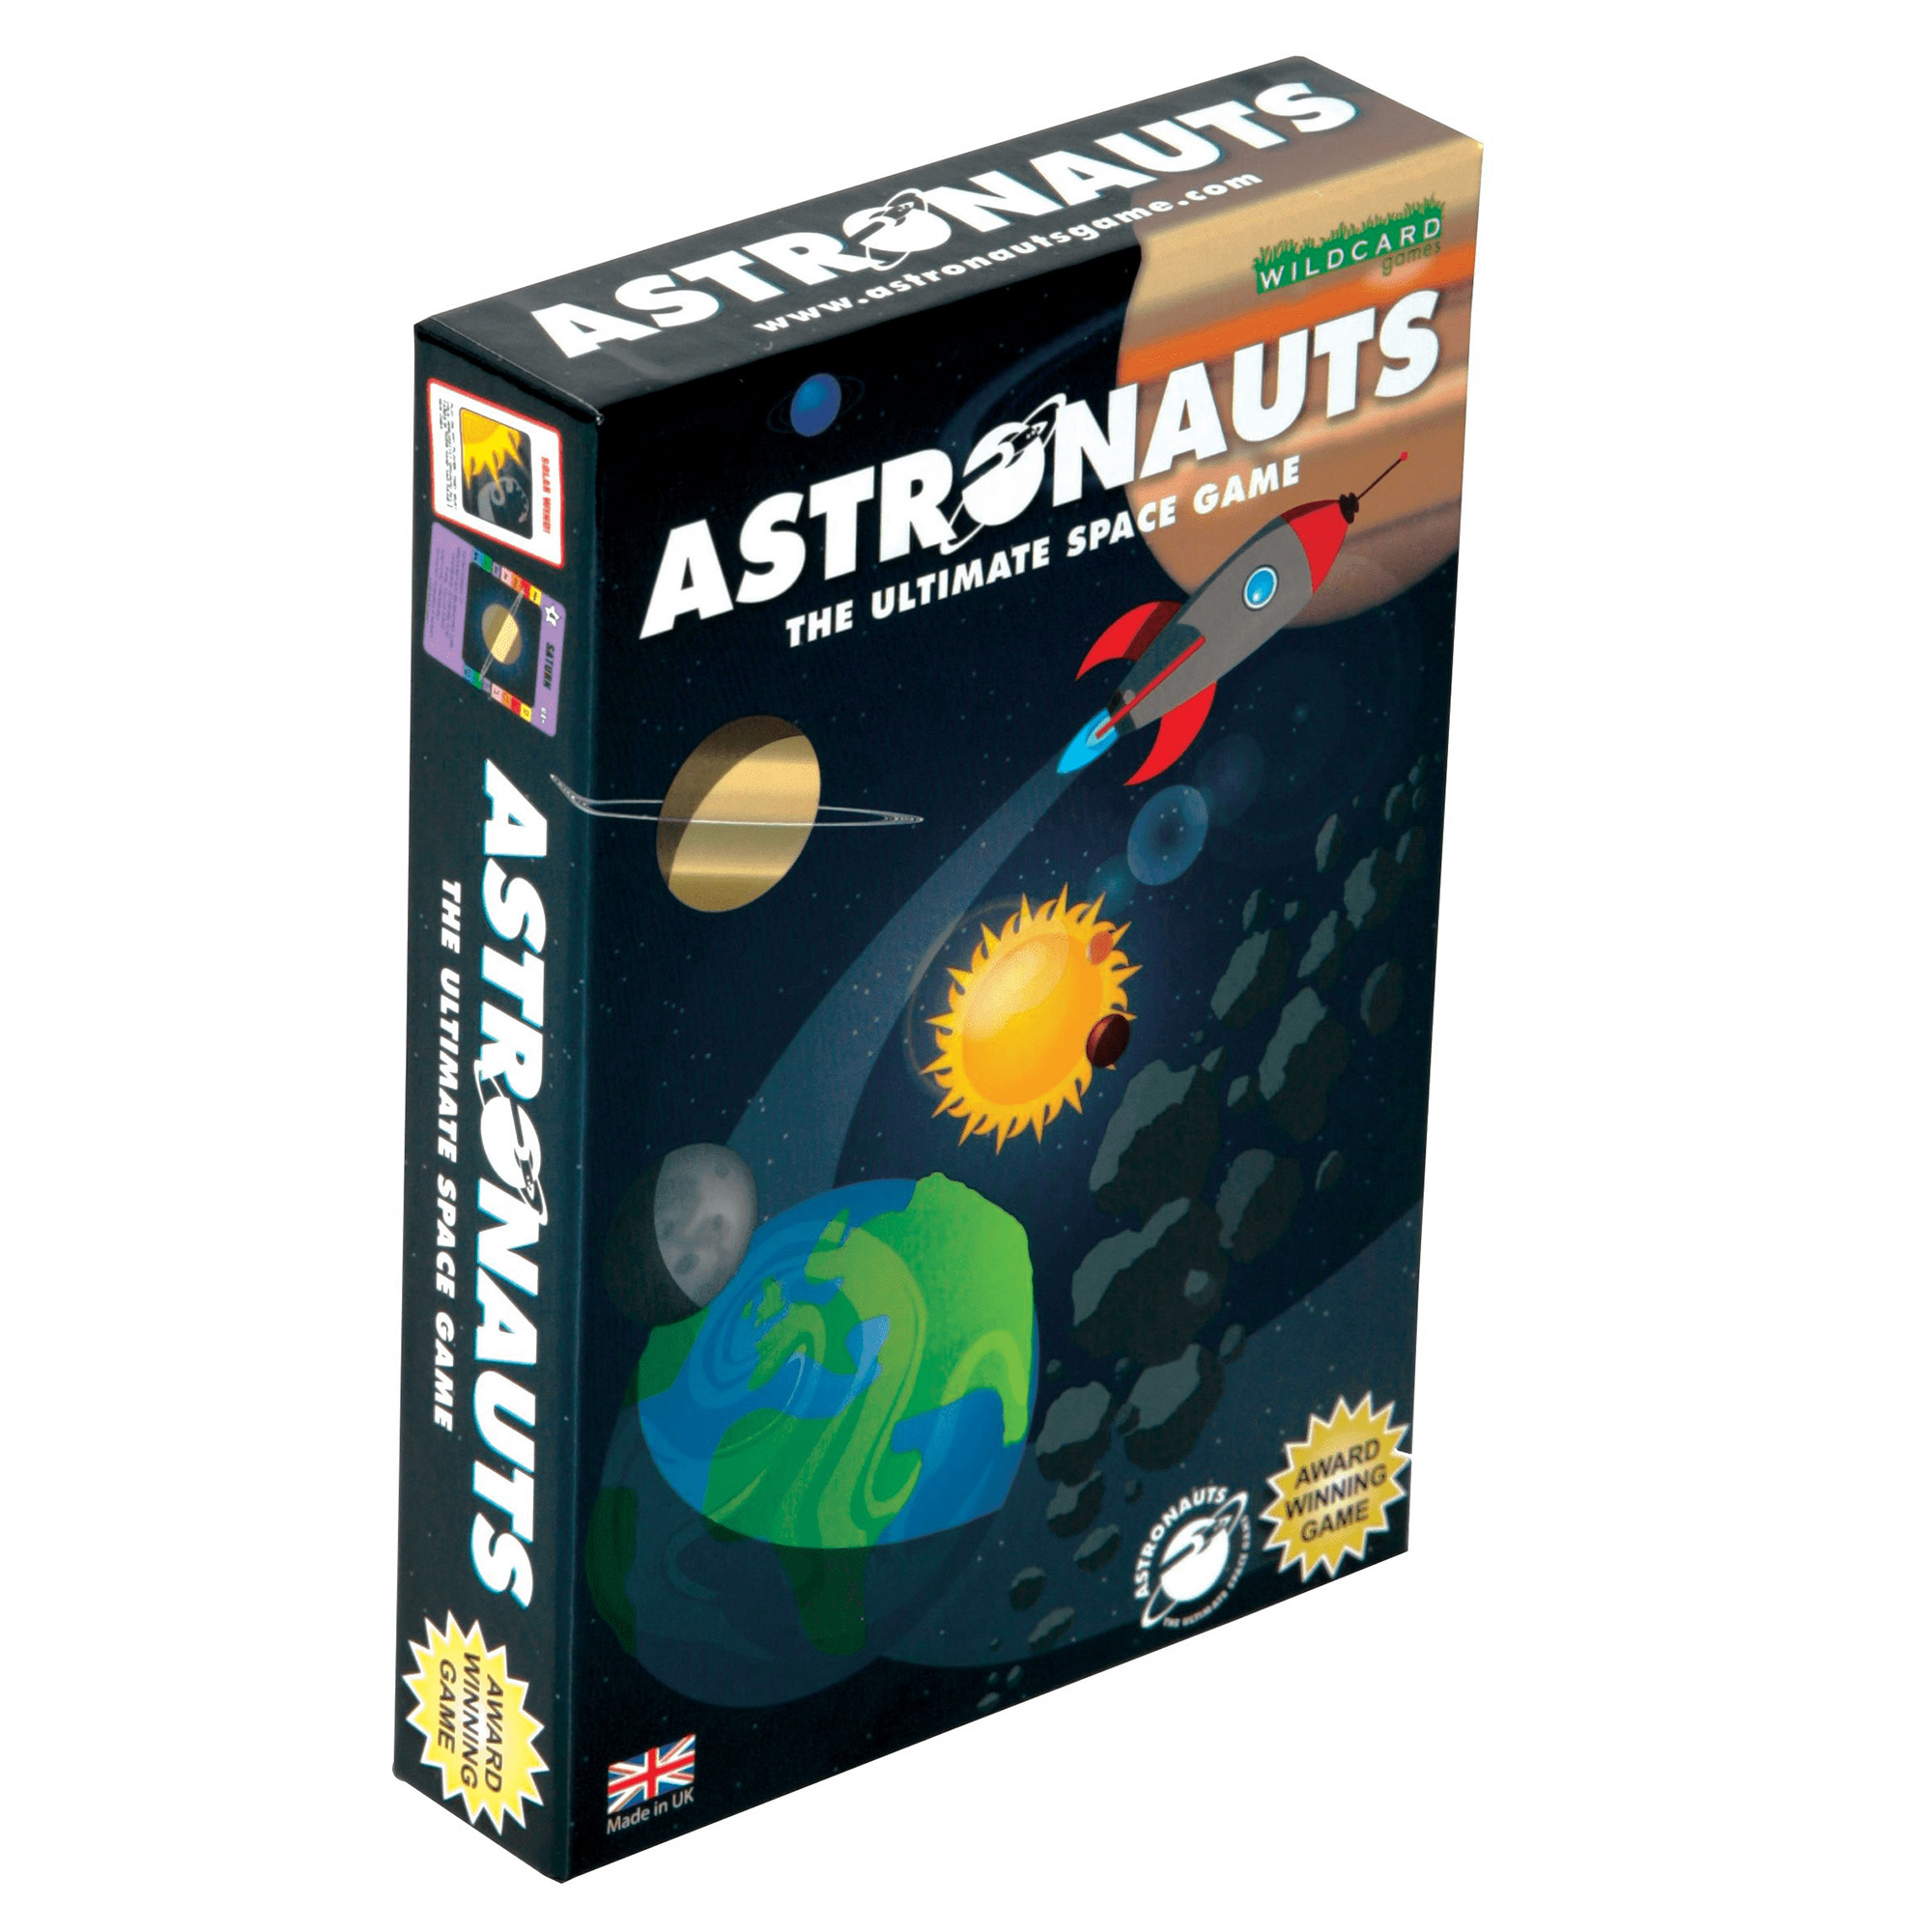 Astronauts The Ultimate Space Game